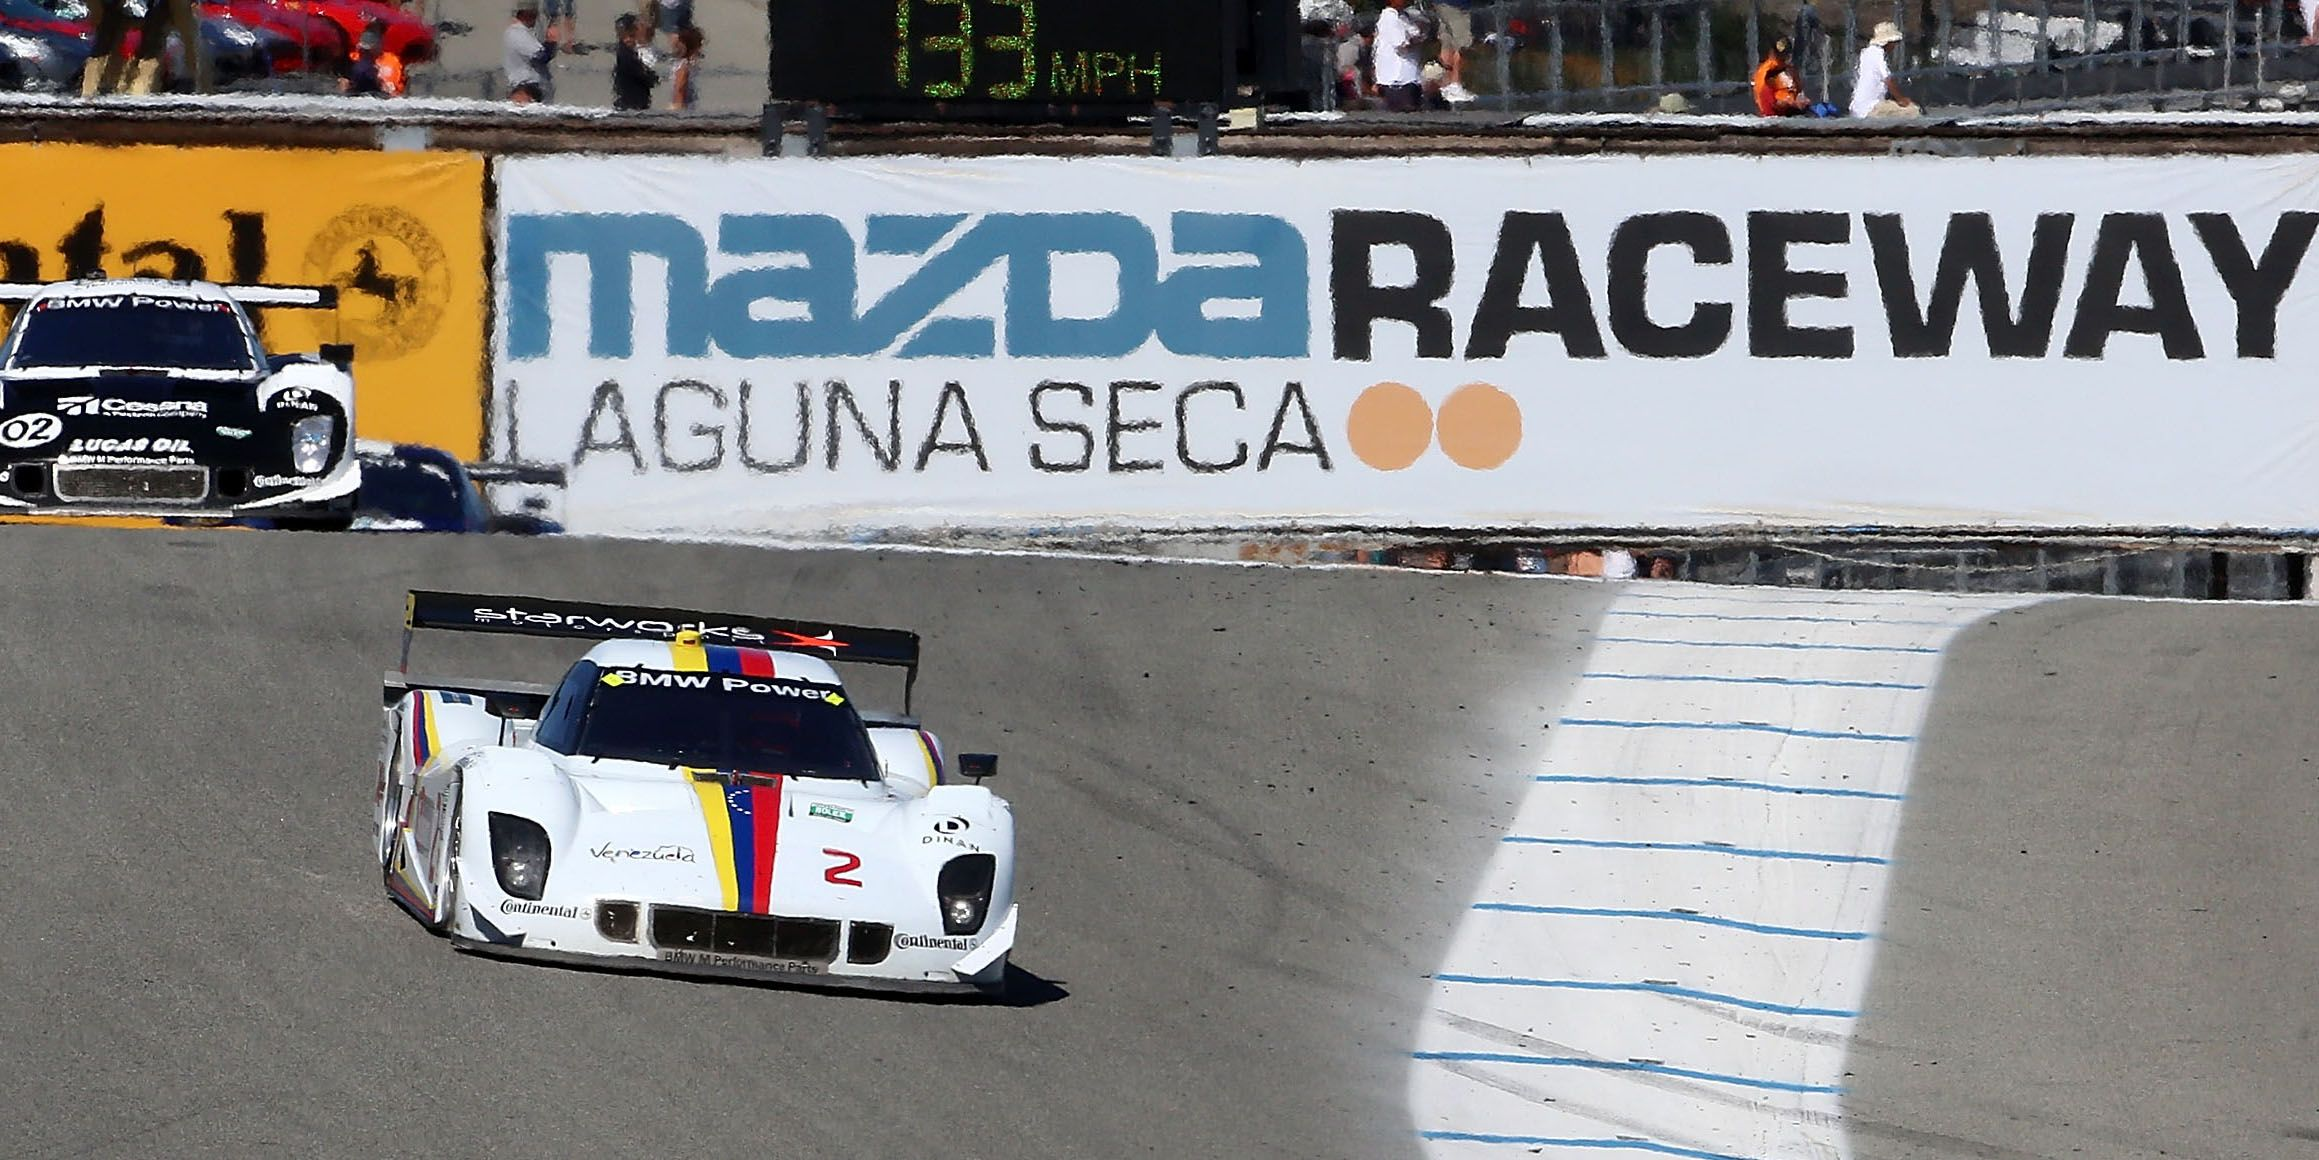 "<p><a href=""http://www.mazdaraceway.com/track"" target=""_blank"">Built in 1957</a> following the widespread public love of the Pebble Beach Road Races, Mazda Raceway Laguna Seca in Northern California is marked by 11 turns, the most famous of which is the Corkscrew. The weather is nearly always perfect, the track is the right amount of challenging, and it's even perfect for spectators.</p>"